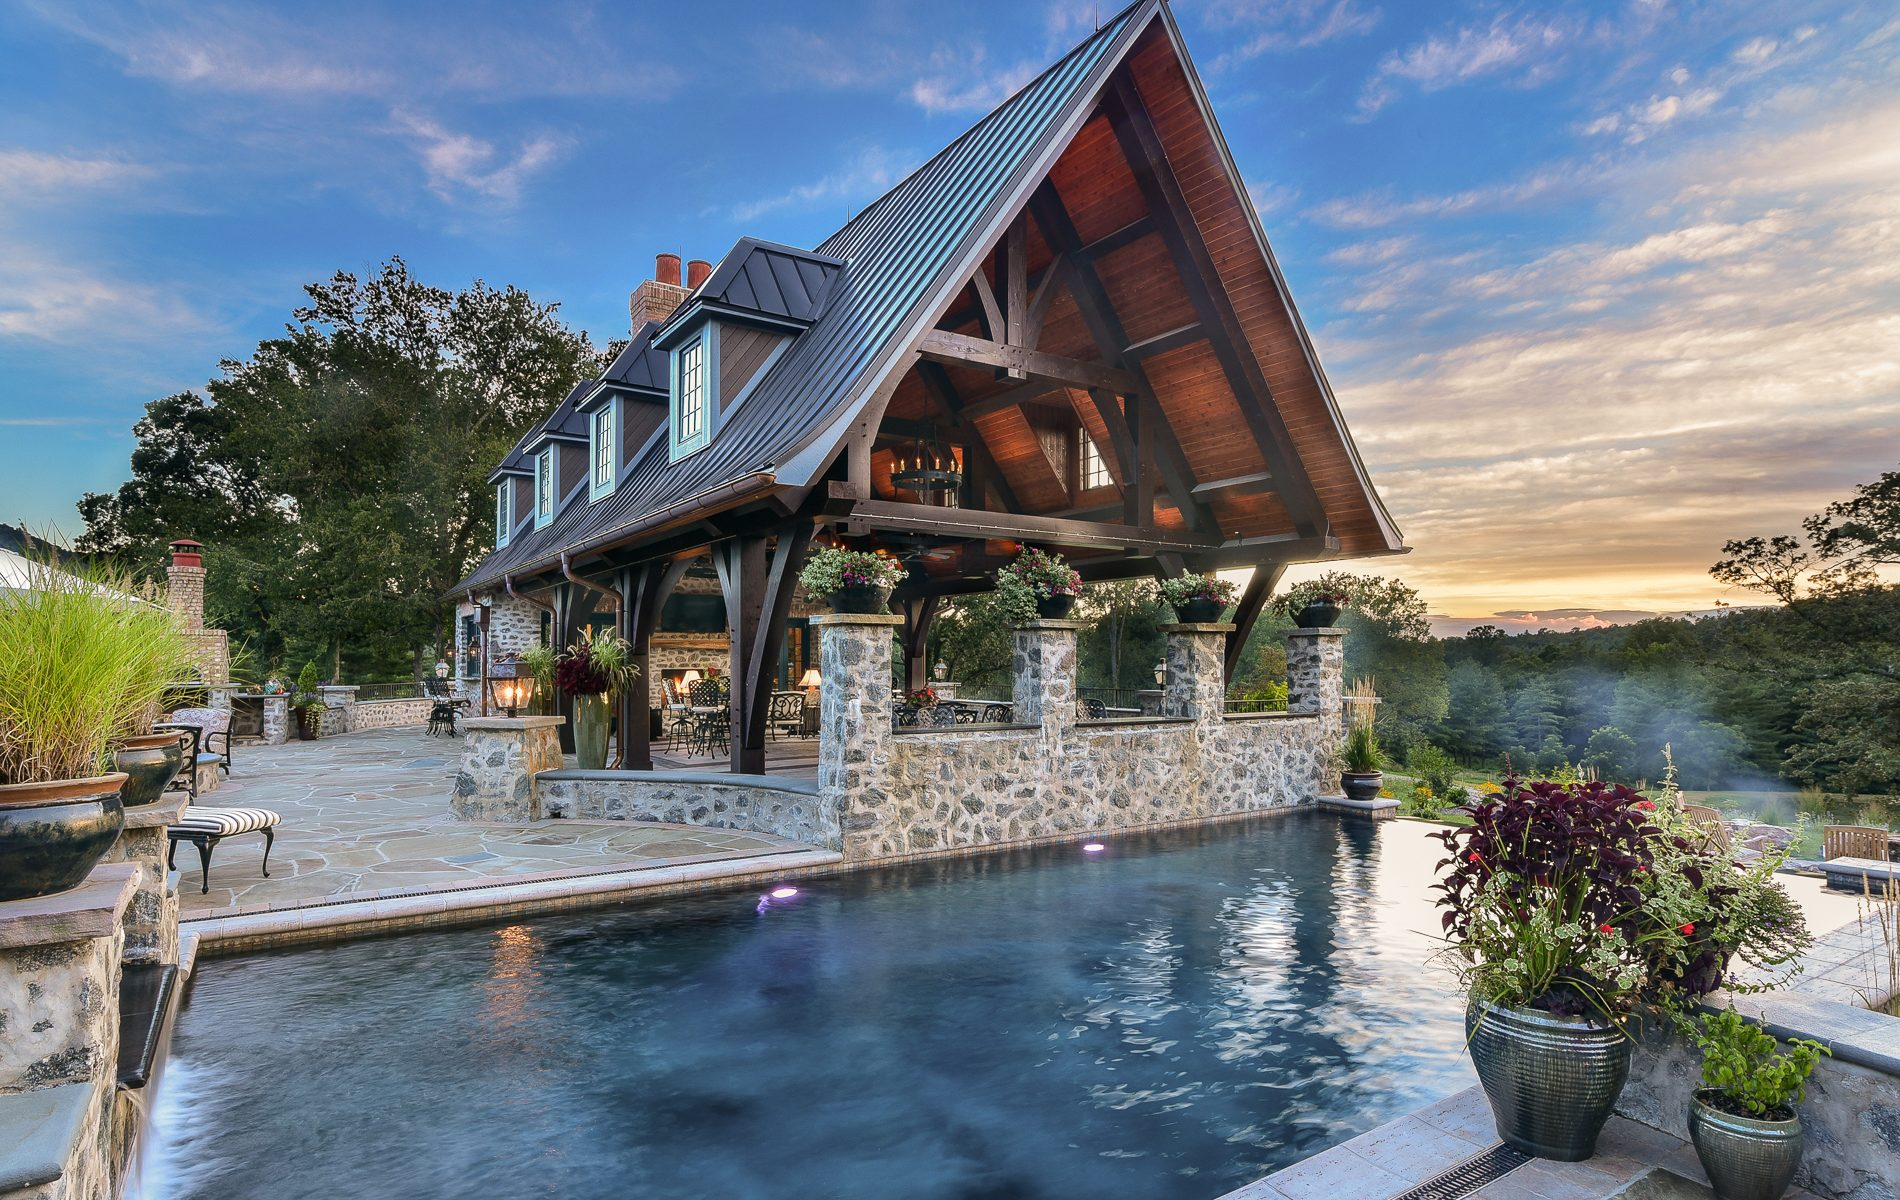 Post and Beam Pool Pavilion with commercial kitchen